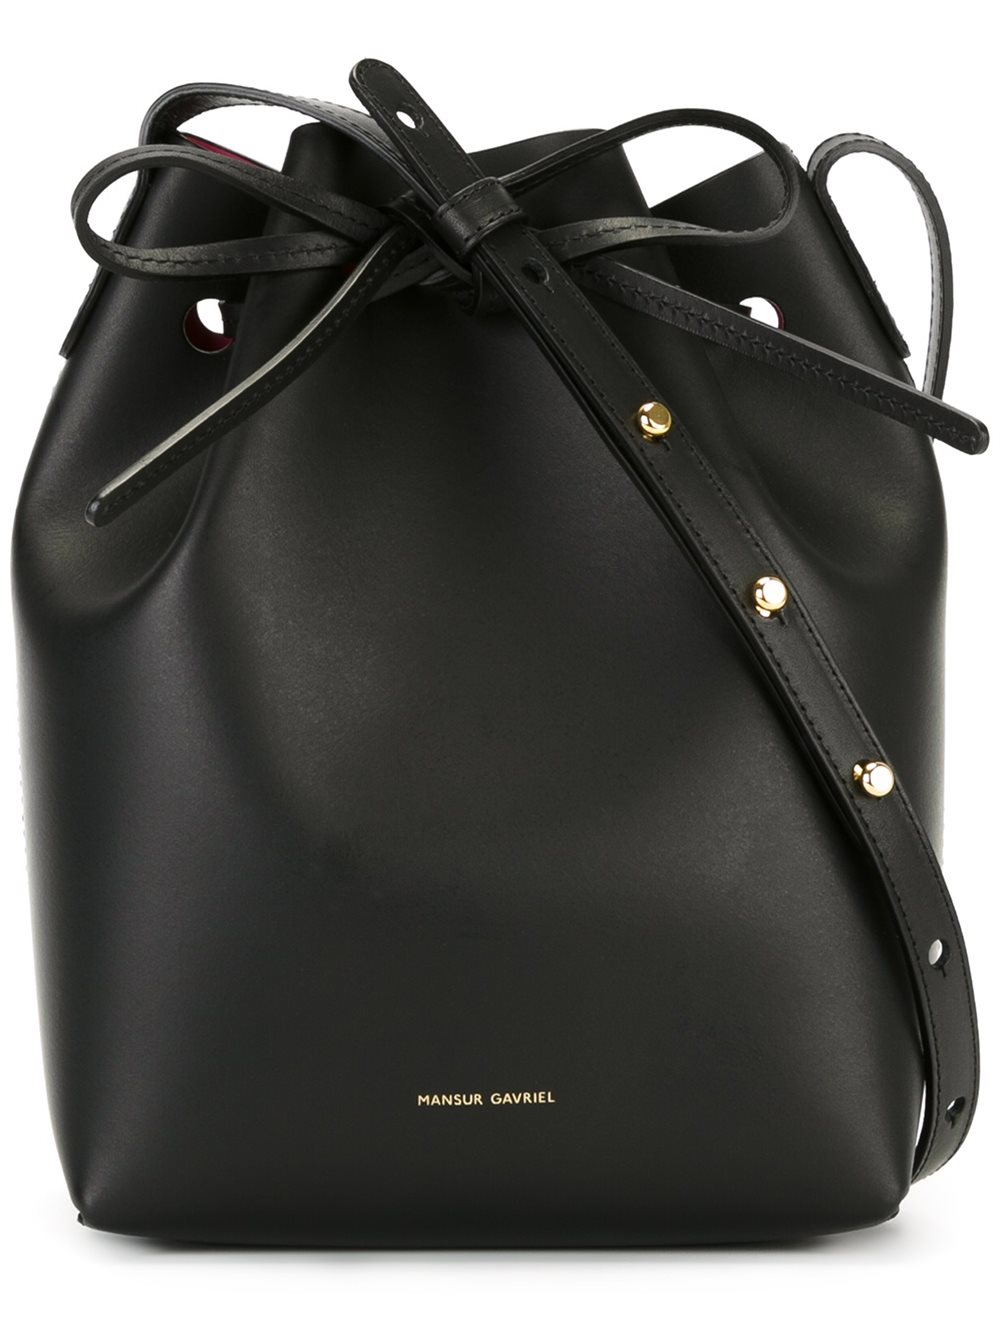 mansur gavriel mini bucket bag lyst. Black Bedroom Furniture Sets. Home Design Ideas